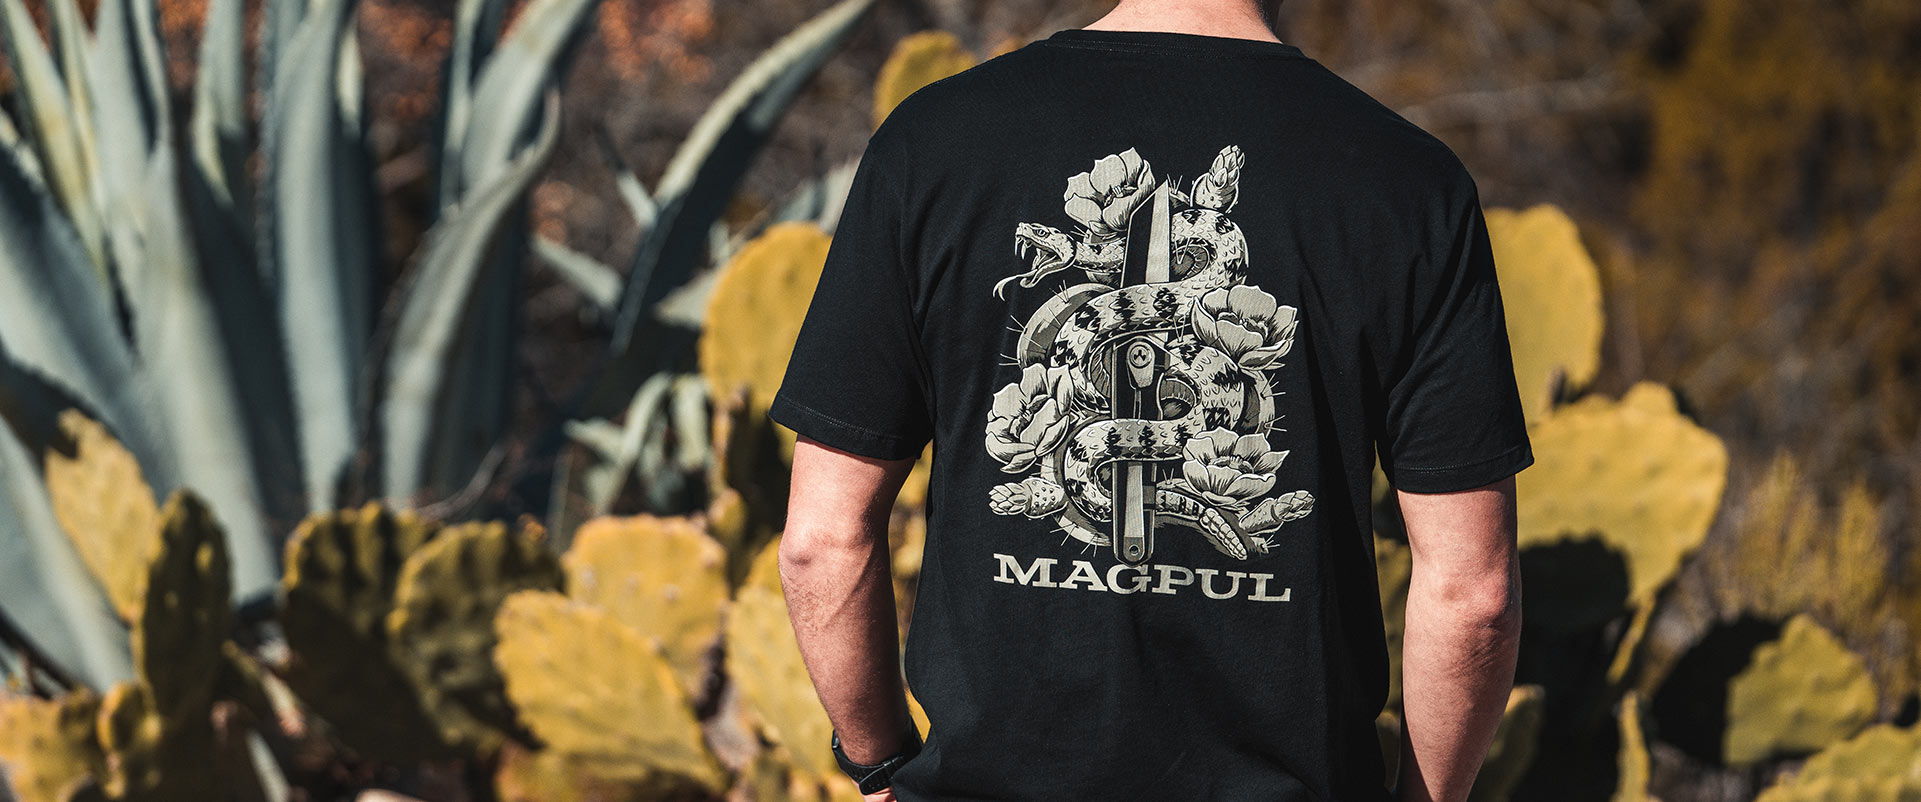 Back of Magpul Diamondback Cotton T-Shirt on man outdoors with large cacti in background